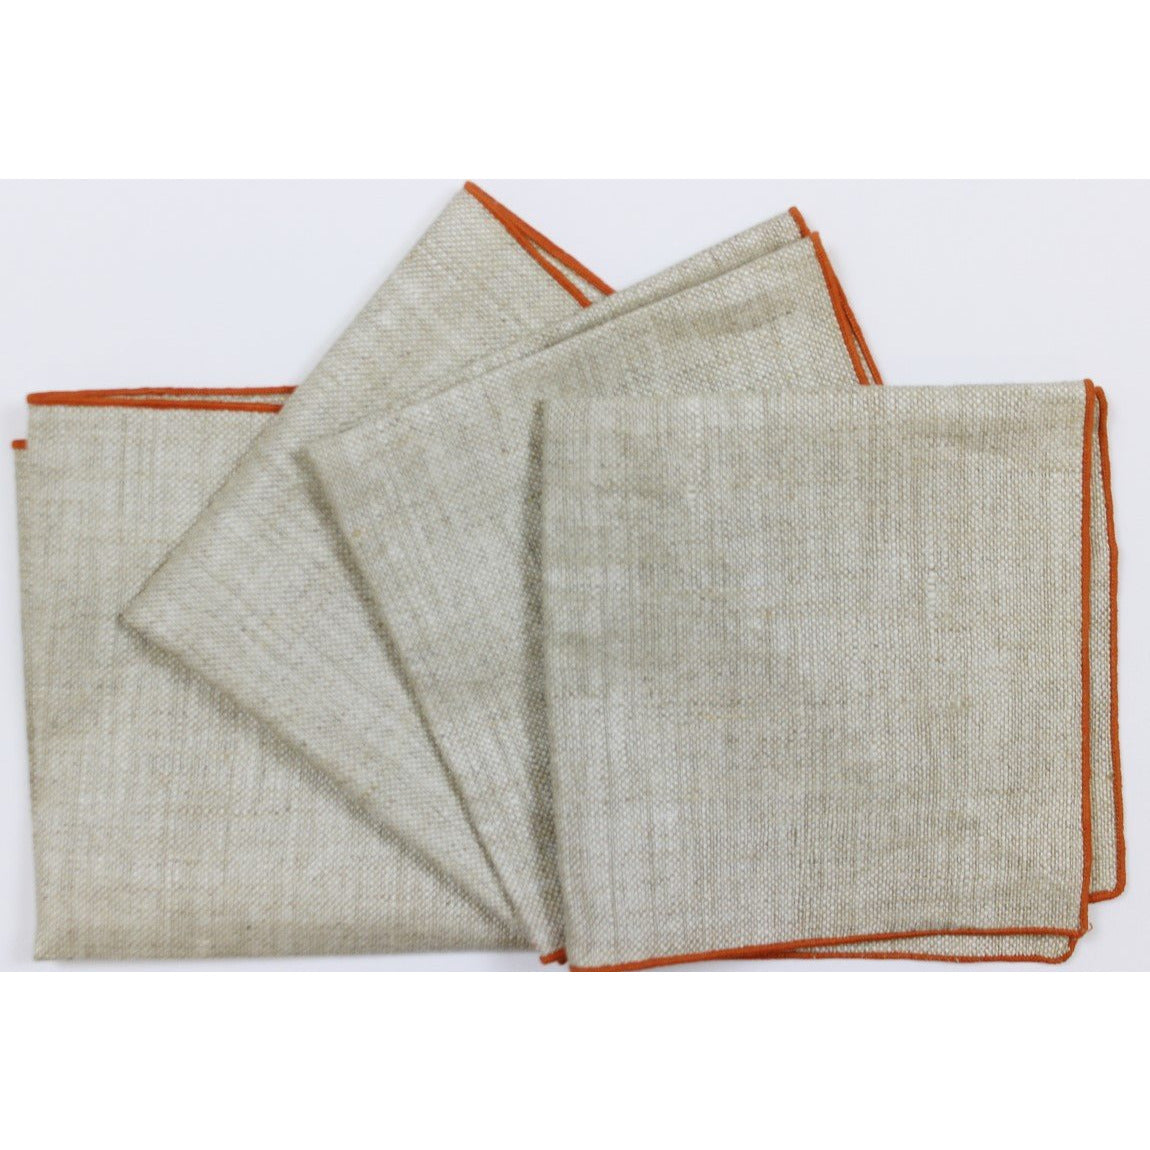 4 Beige Napkins w/ Orange Border